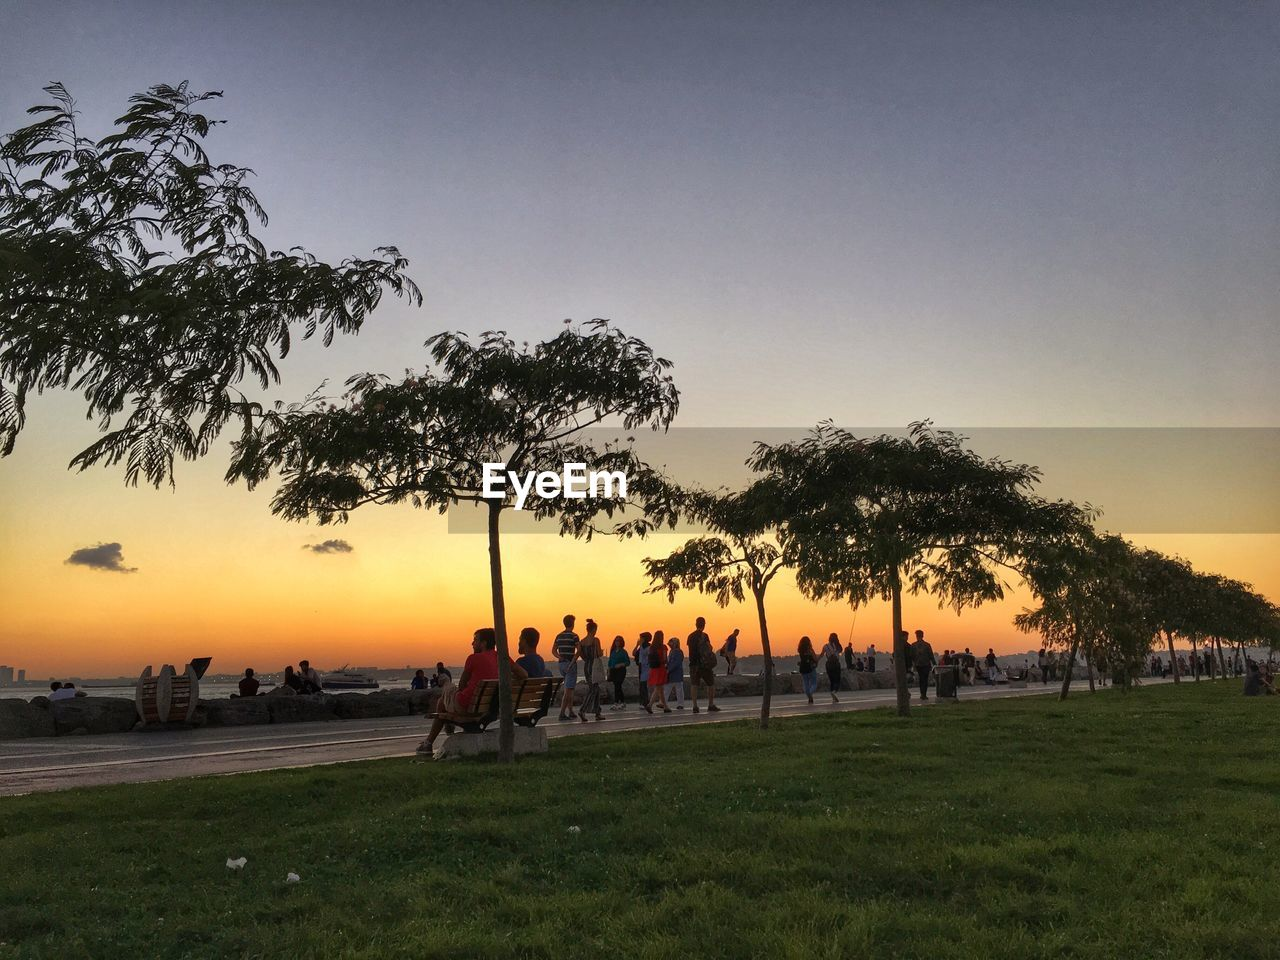 tree, nature, sunset, grass, large group of people, beauty in nature, real people, leisure activity, growth, clear sky, outdoors, scenics, silhouette, park - man made space, landscape, tranquility, tranquil scene, sky, men, tree trunk, lifestyles, women, palm tree, day, people